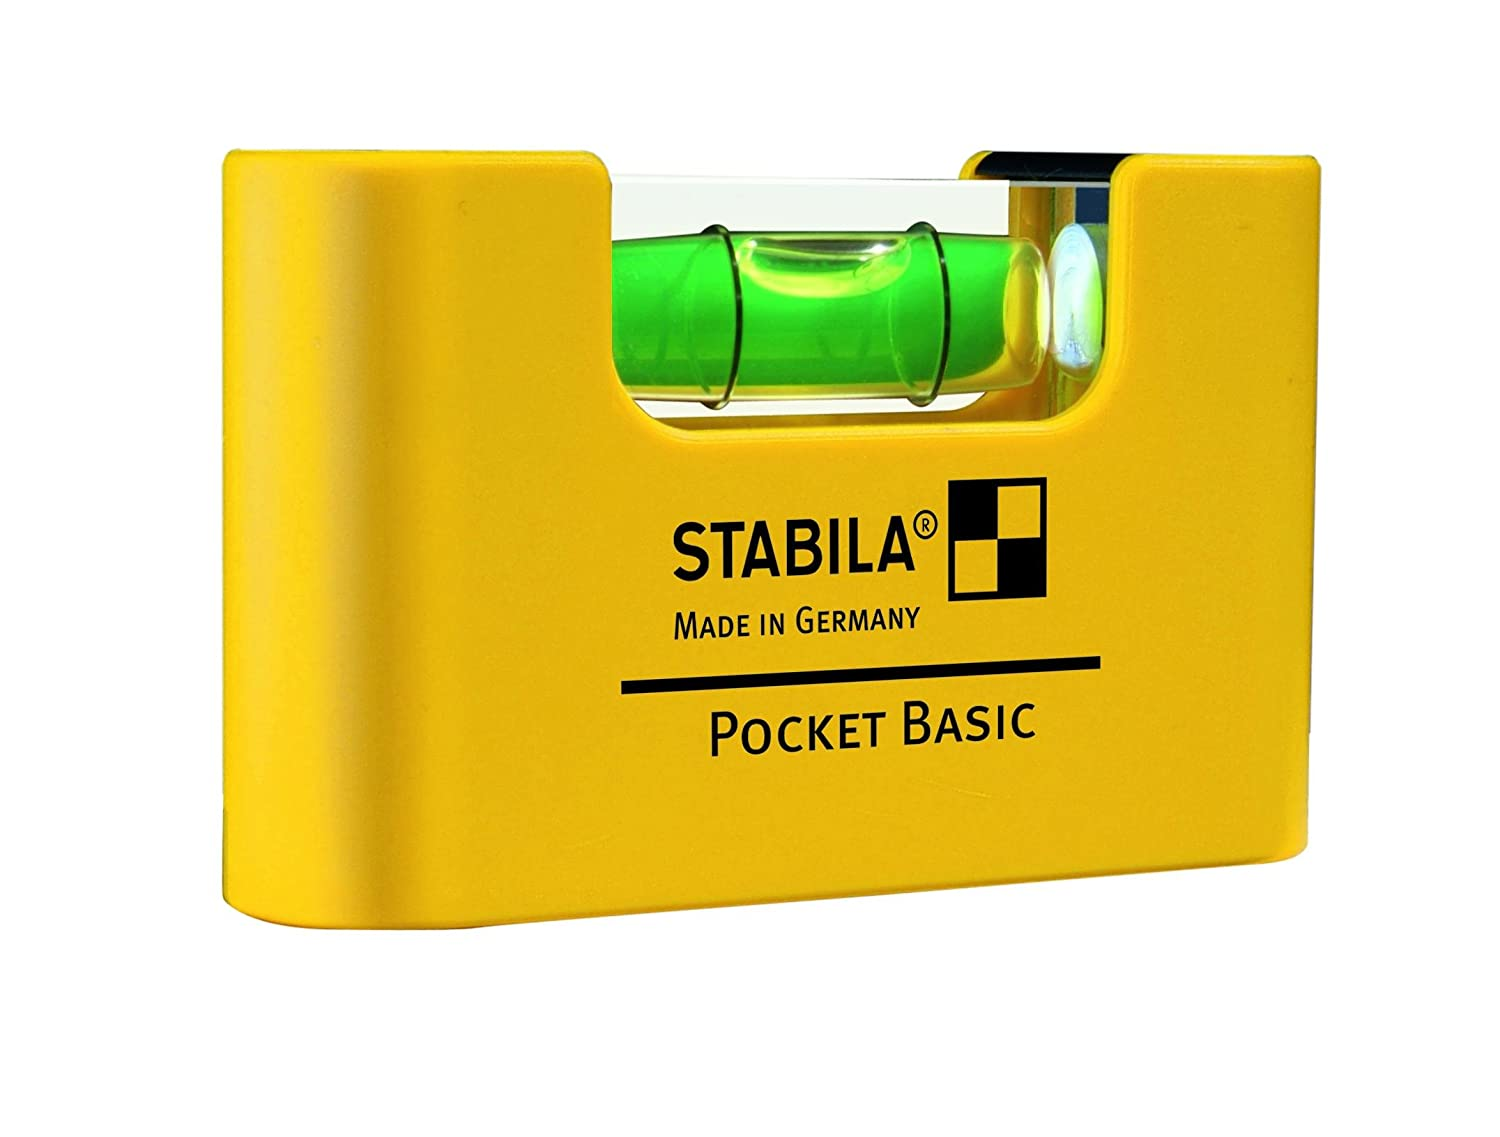 Stabila 17773 Wasserwaage Pocket Basic STBPOCKETBAS